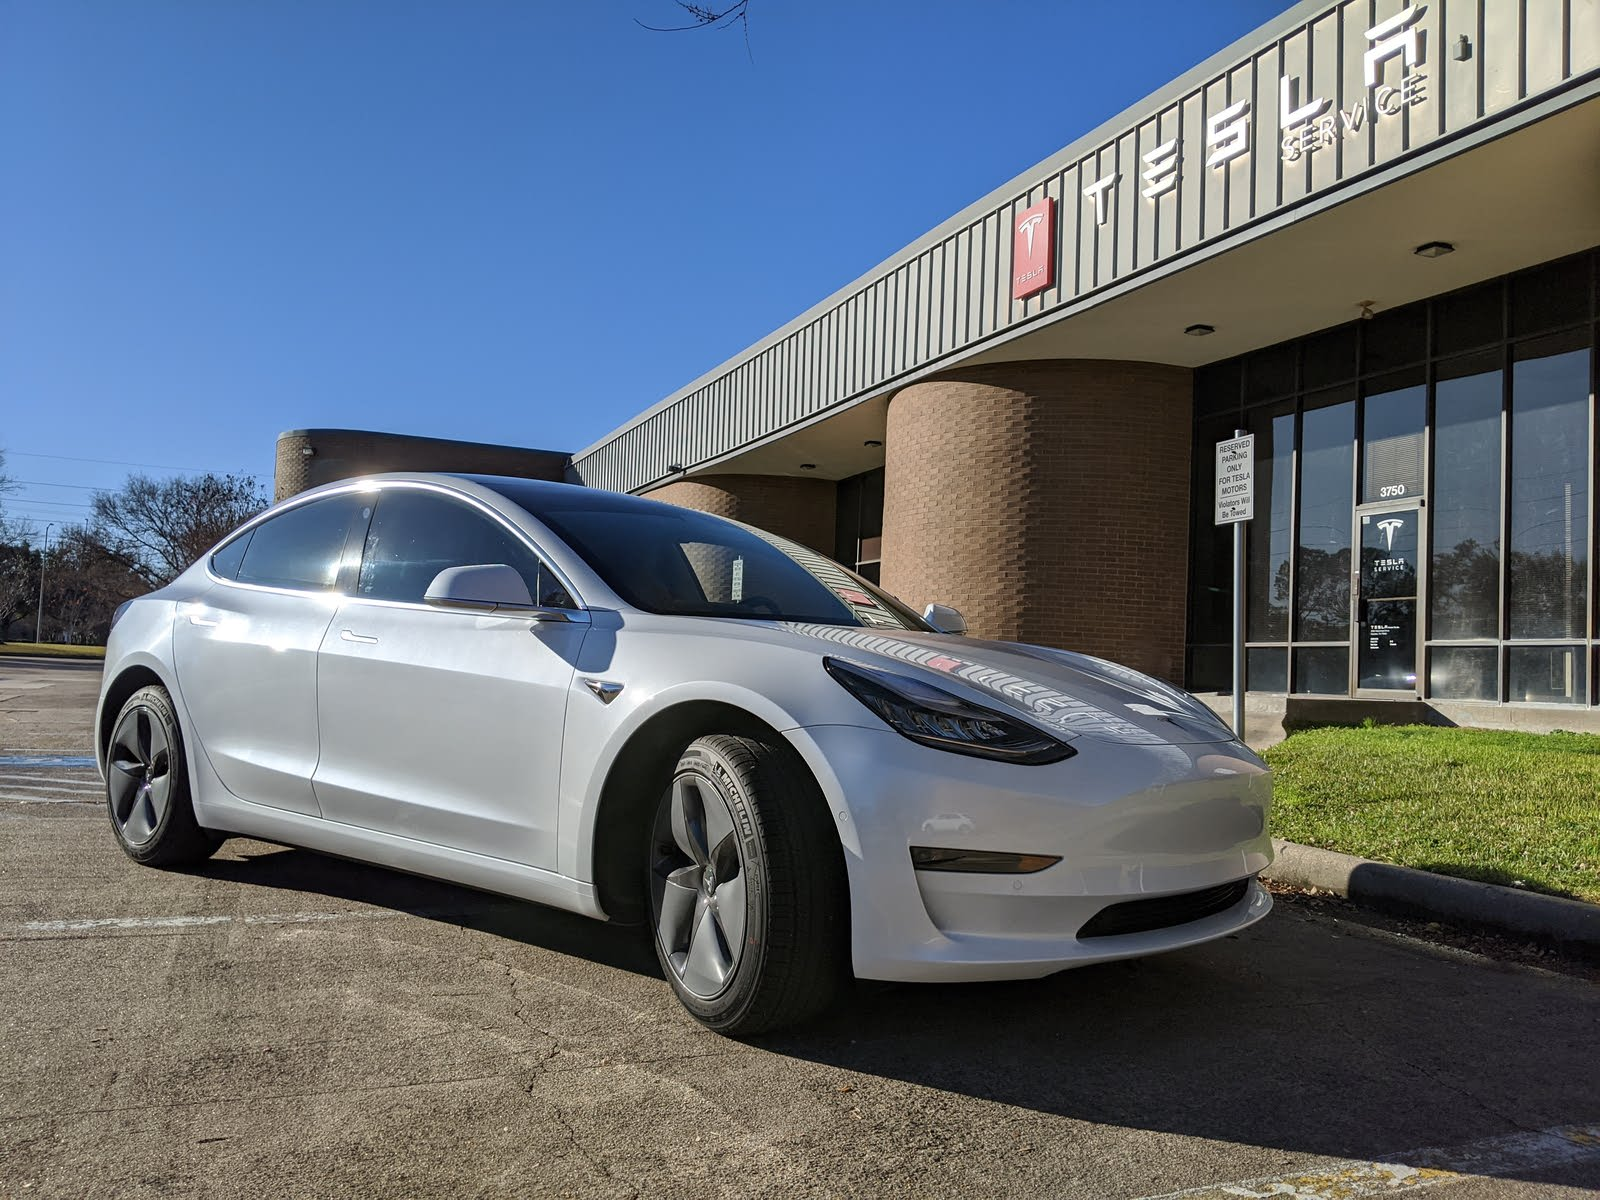 Used 2020 Tesla Model 3 for Sale (with Photos) - CarGurus